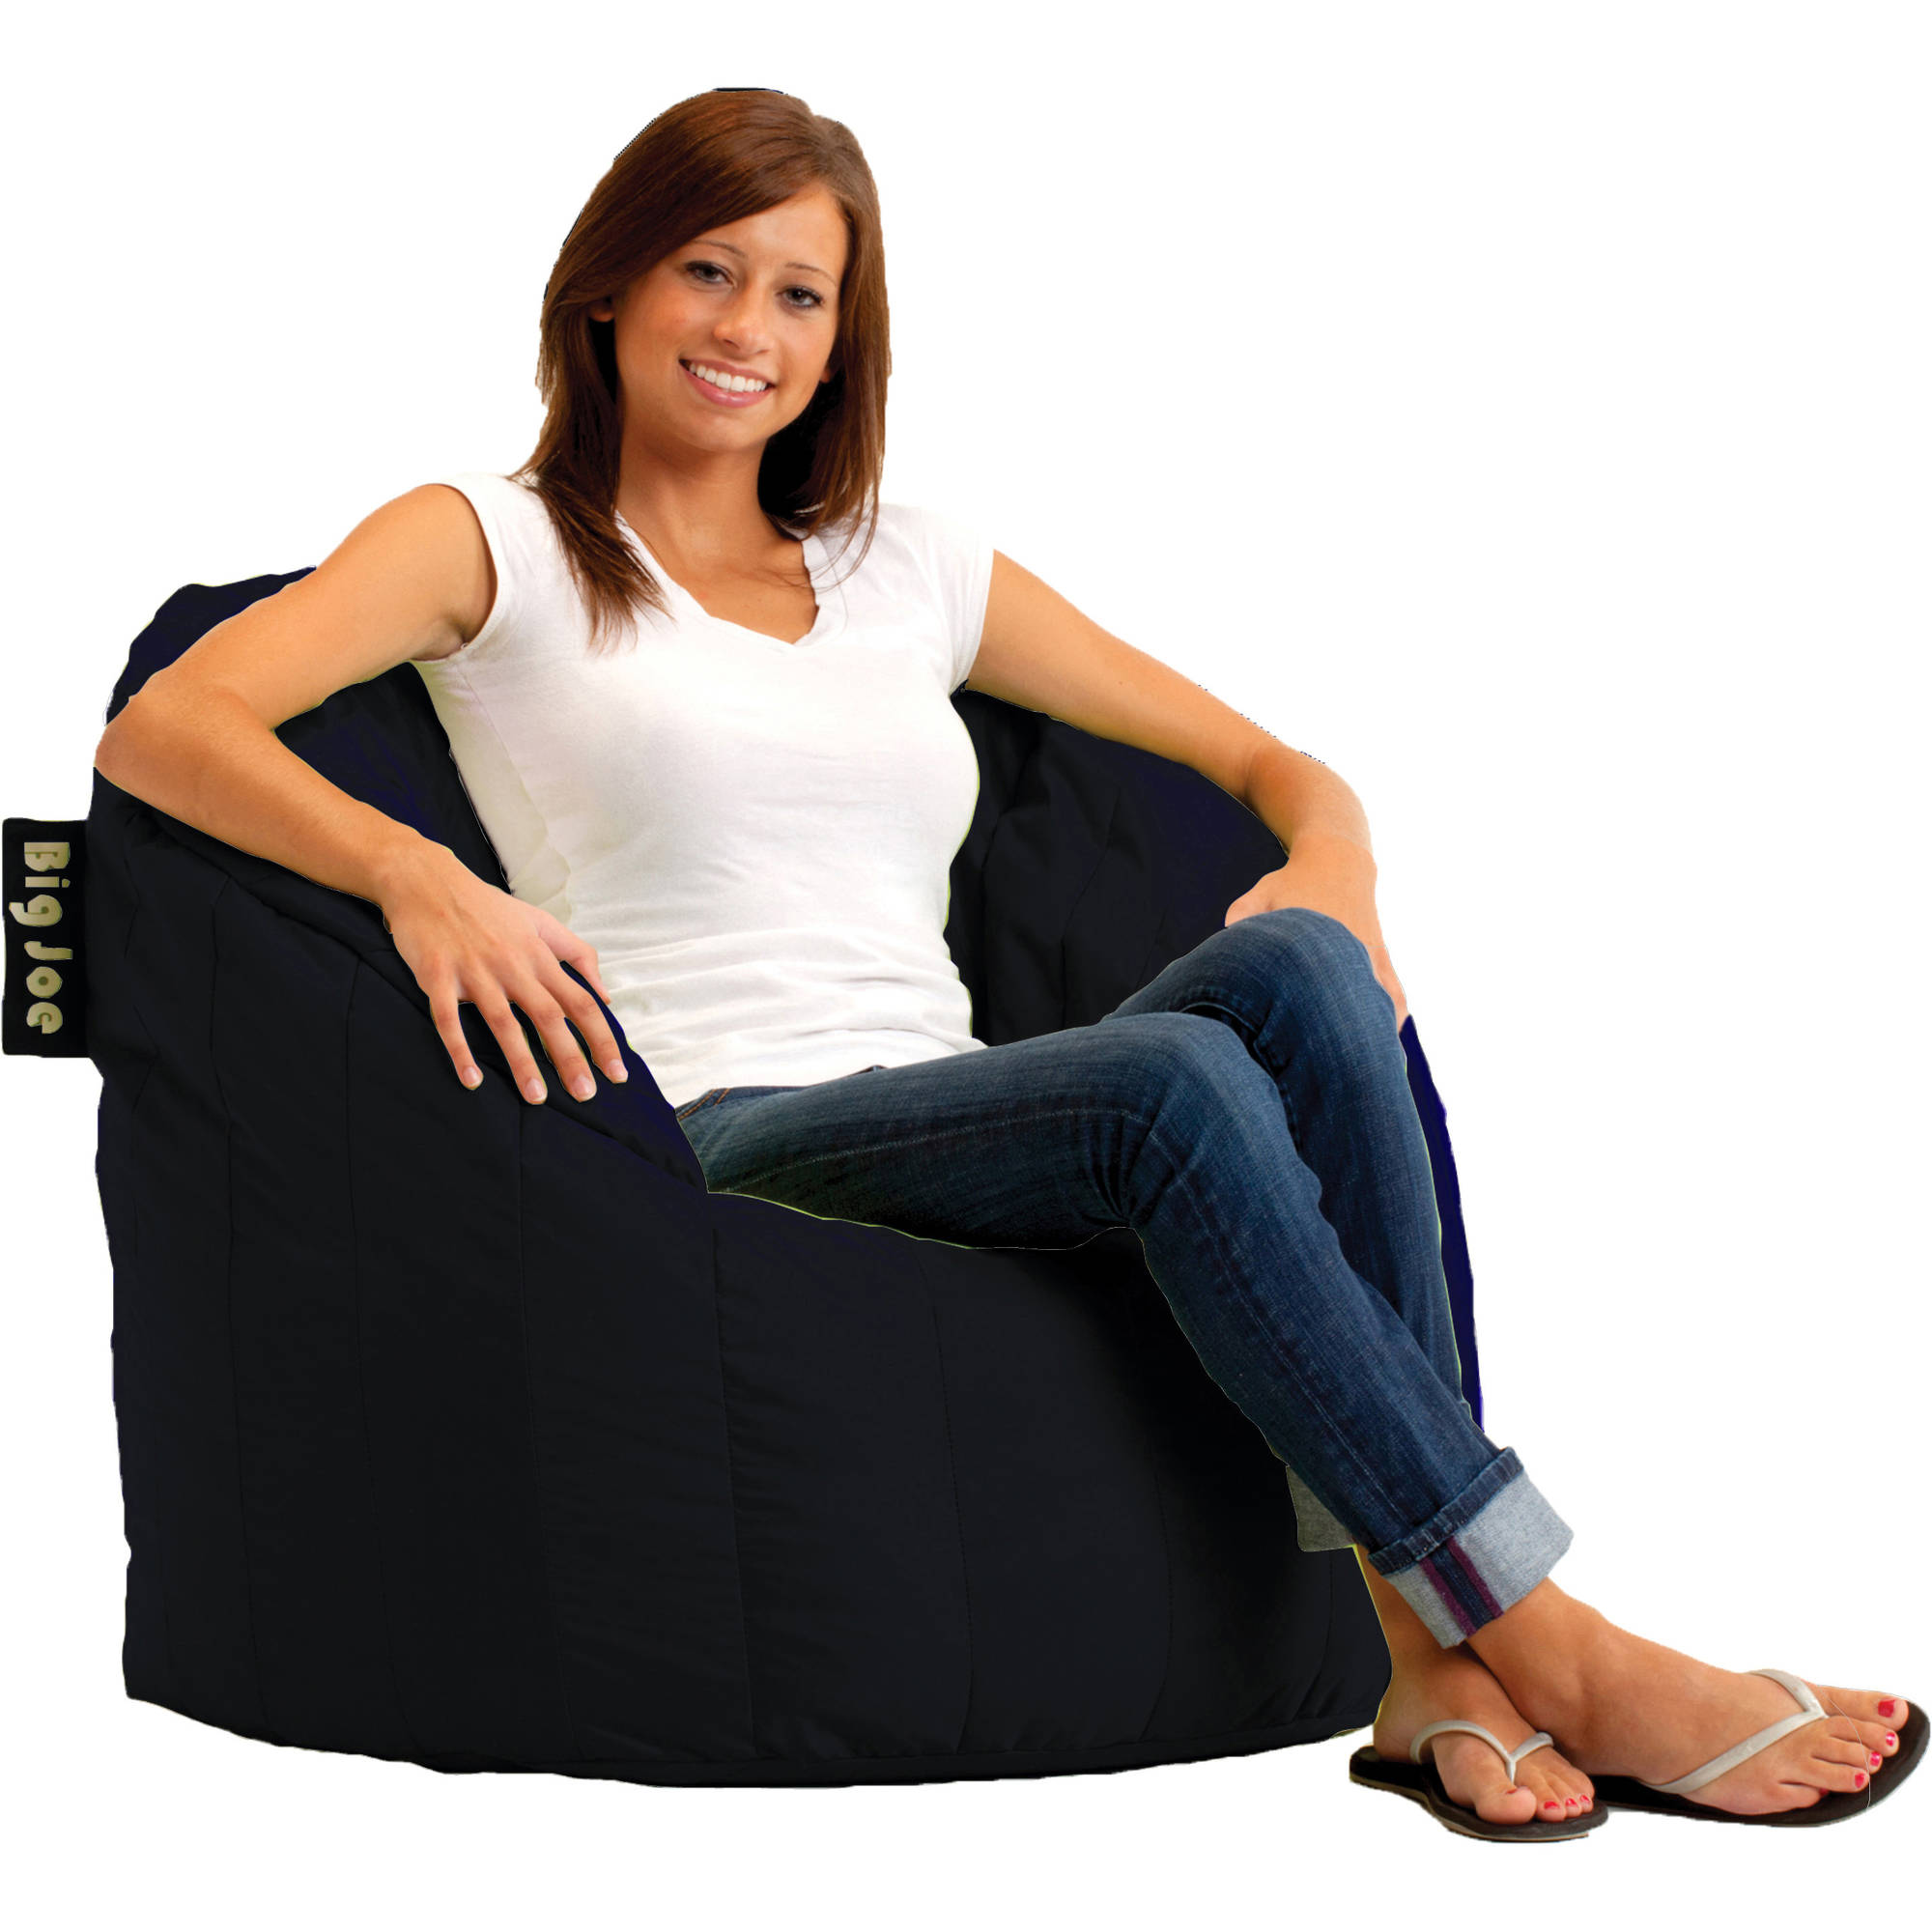 big joe bean bag chair pink perfect sleep lumin chair, available in multiple colors - walmart.com